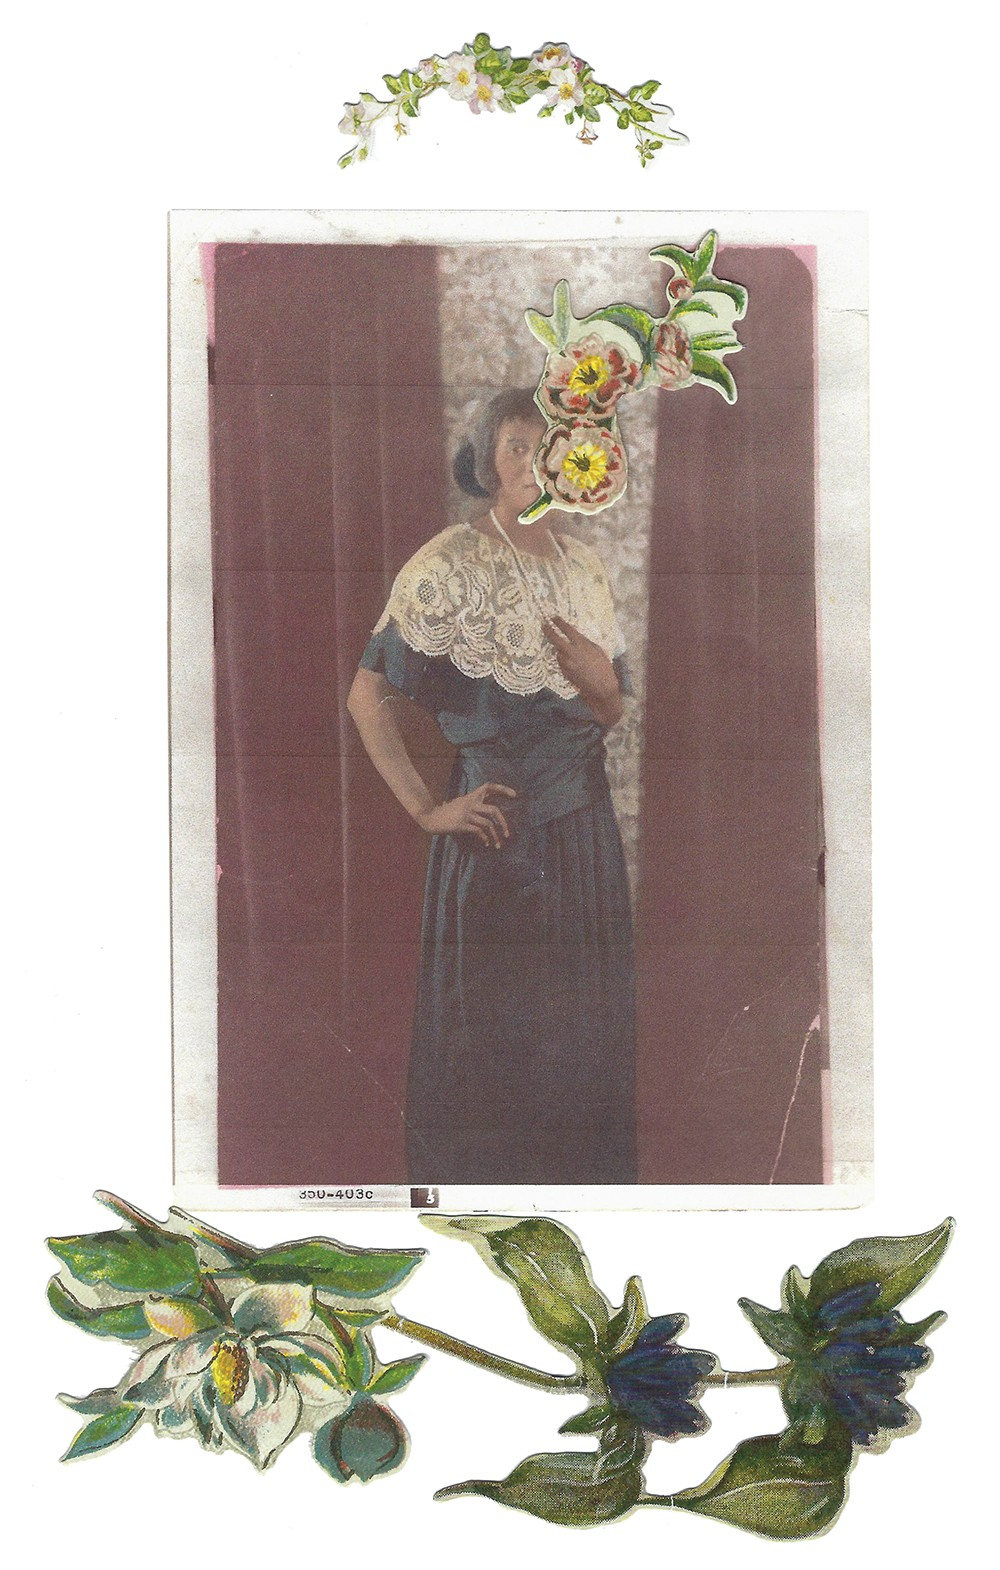 Collage of a woman wearing a lace dress and pearls, with cut-out flowers overlaid.